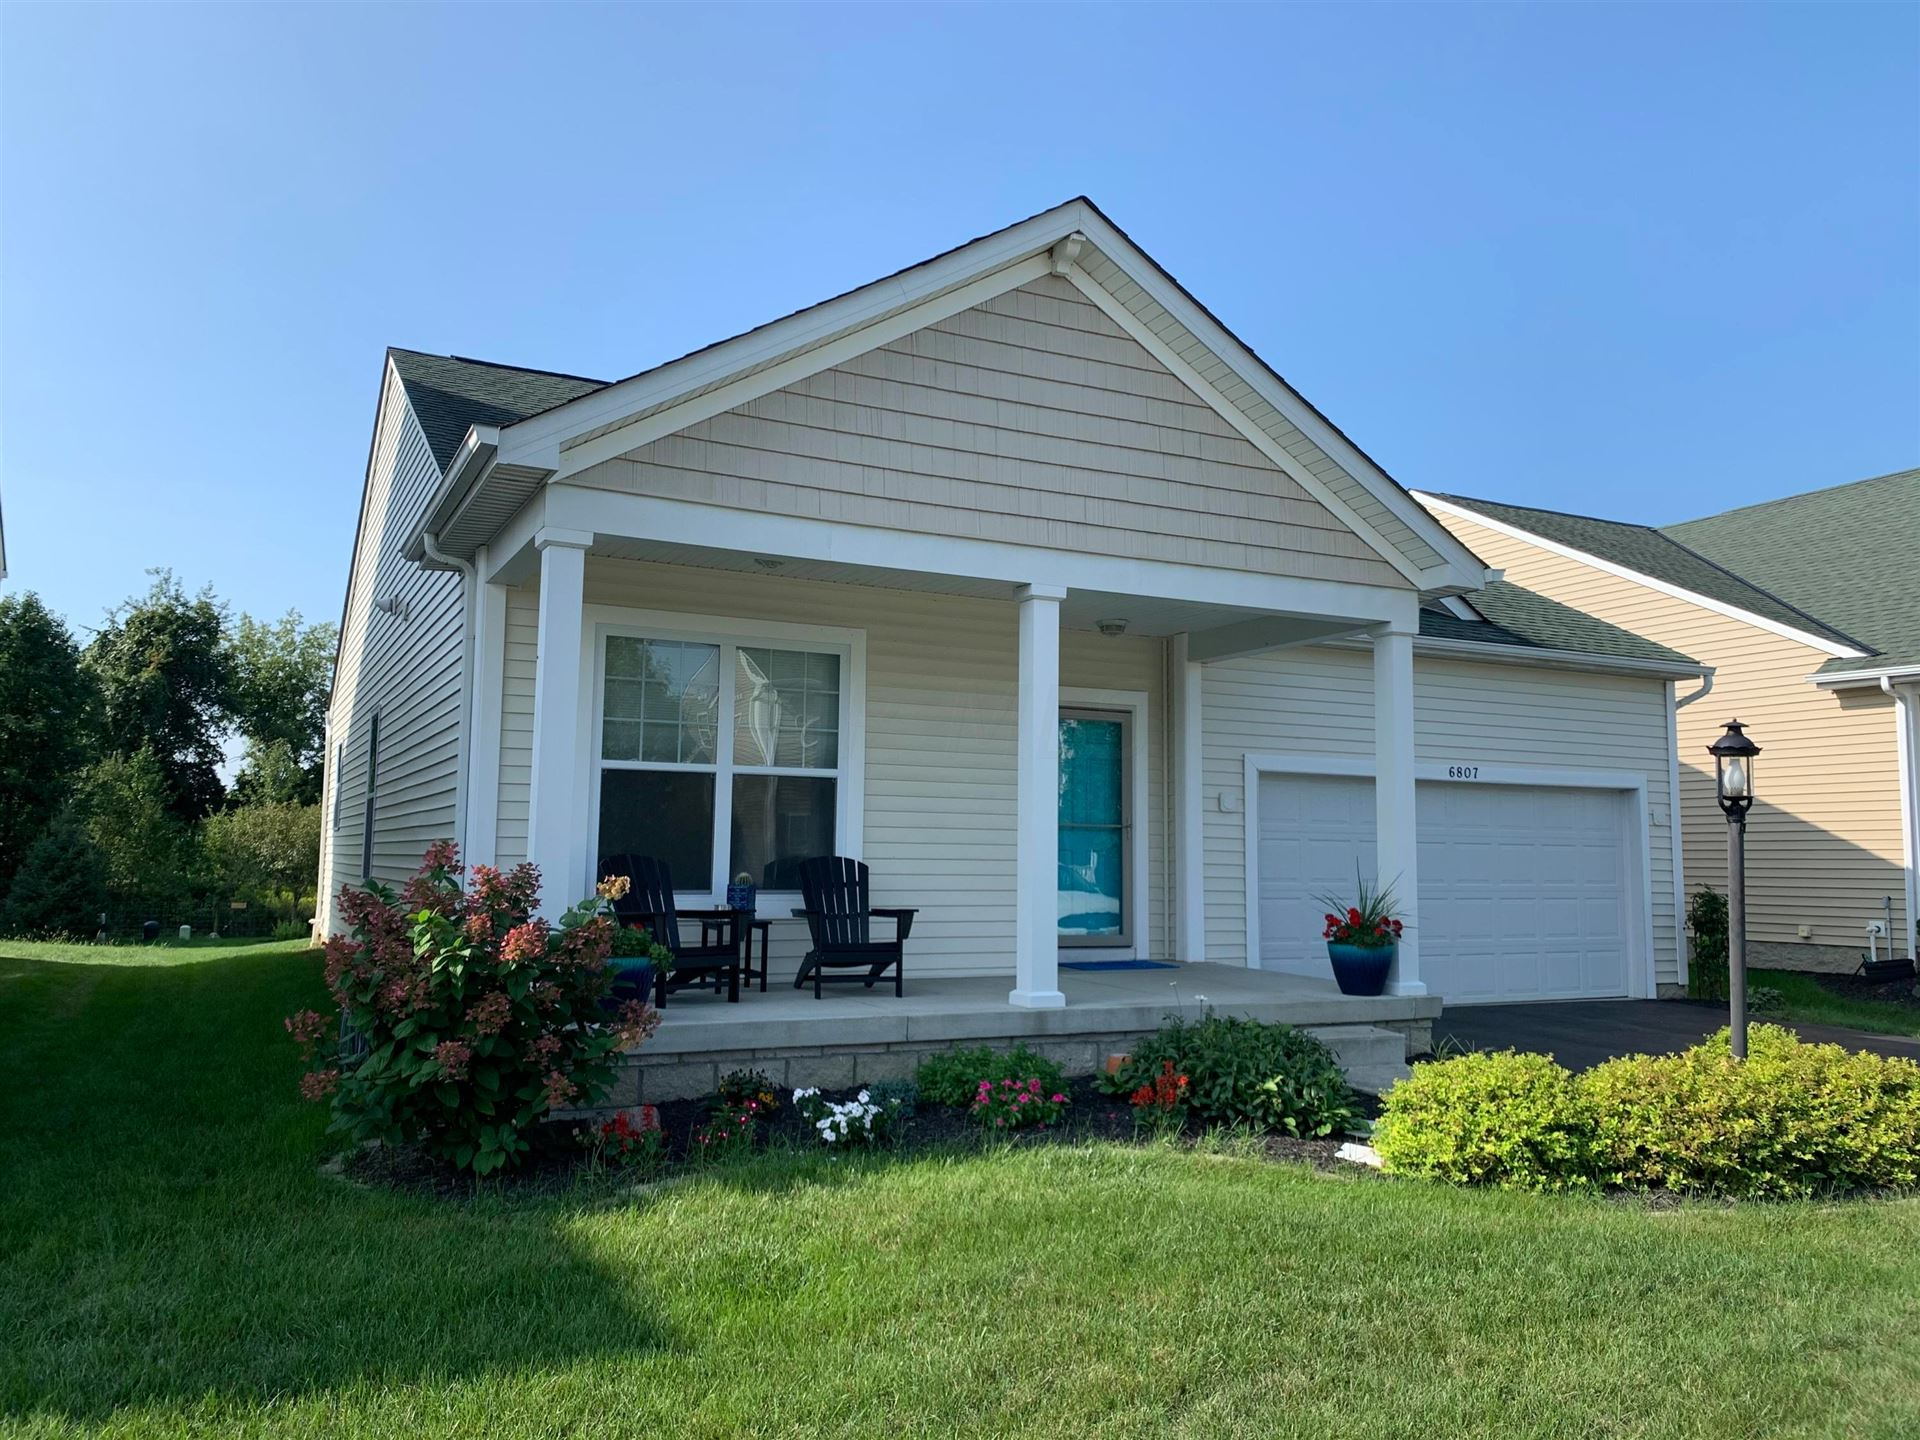 6807 John Drive, Canal Winchester, OH 43110 - MLS#: 220031658